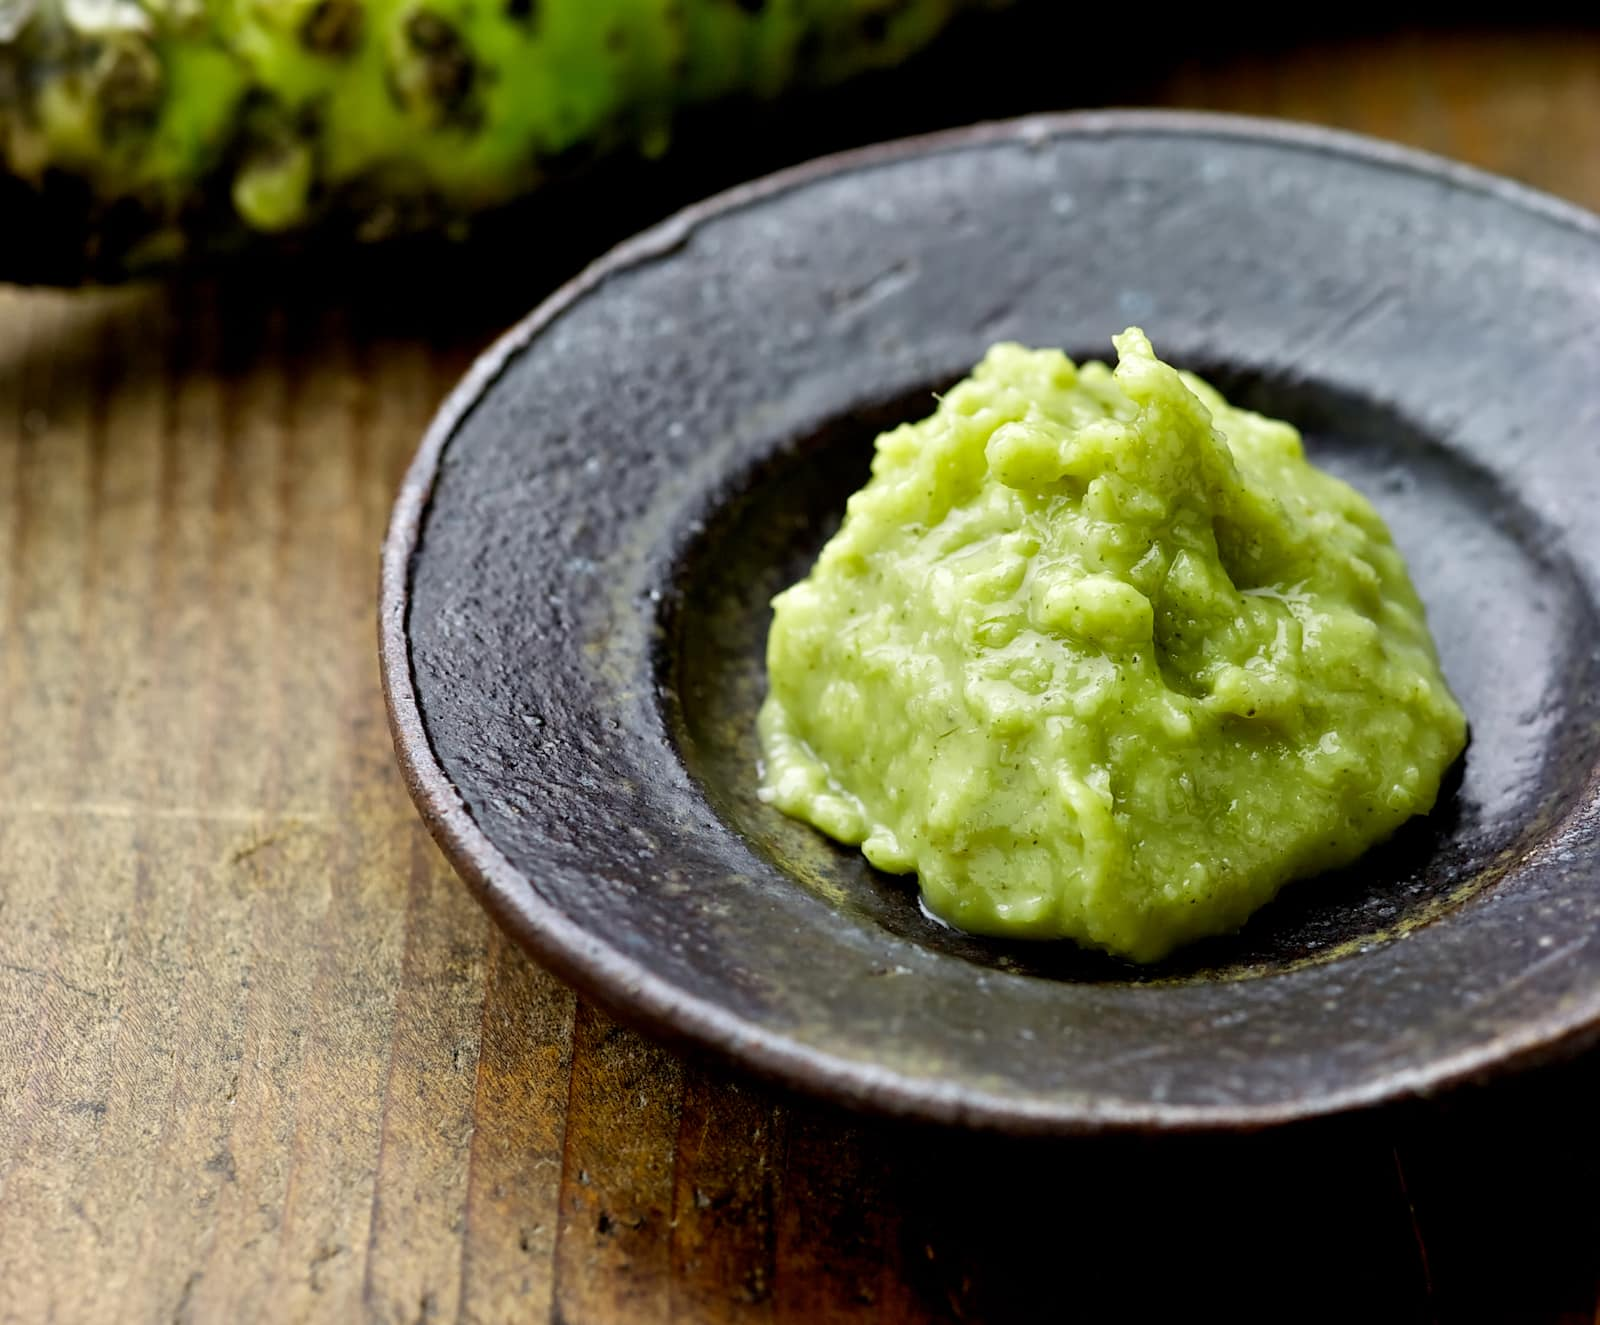 Too Much Wasabi? What To Do To Save Your Dish